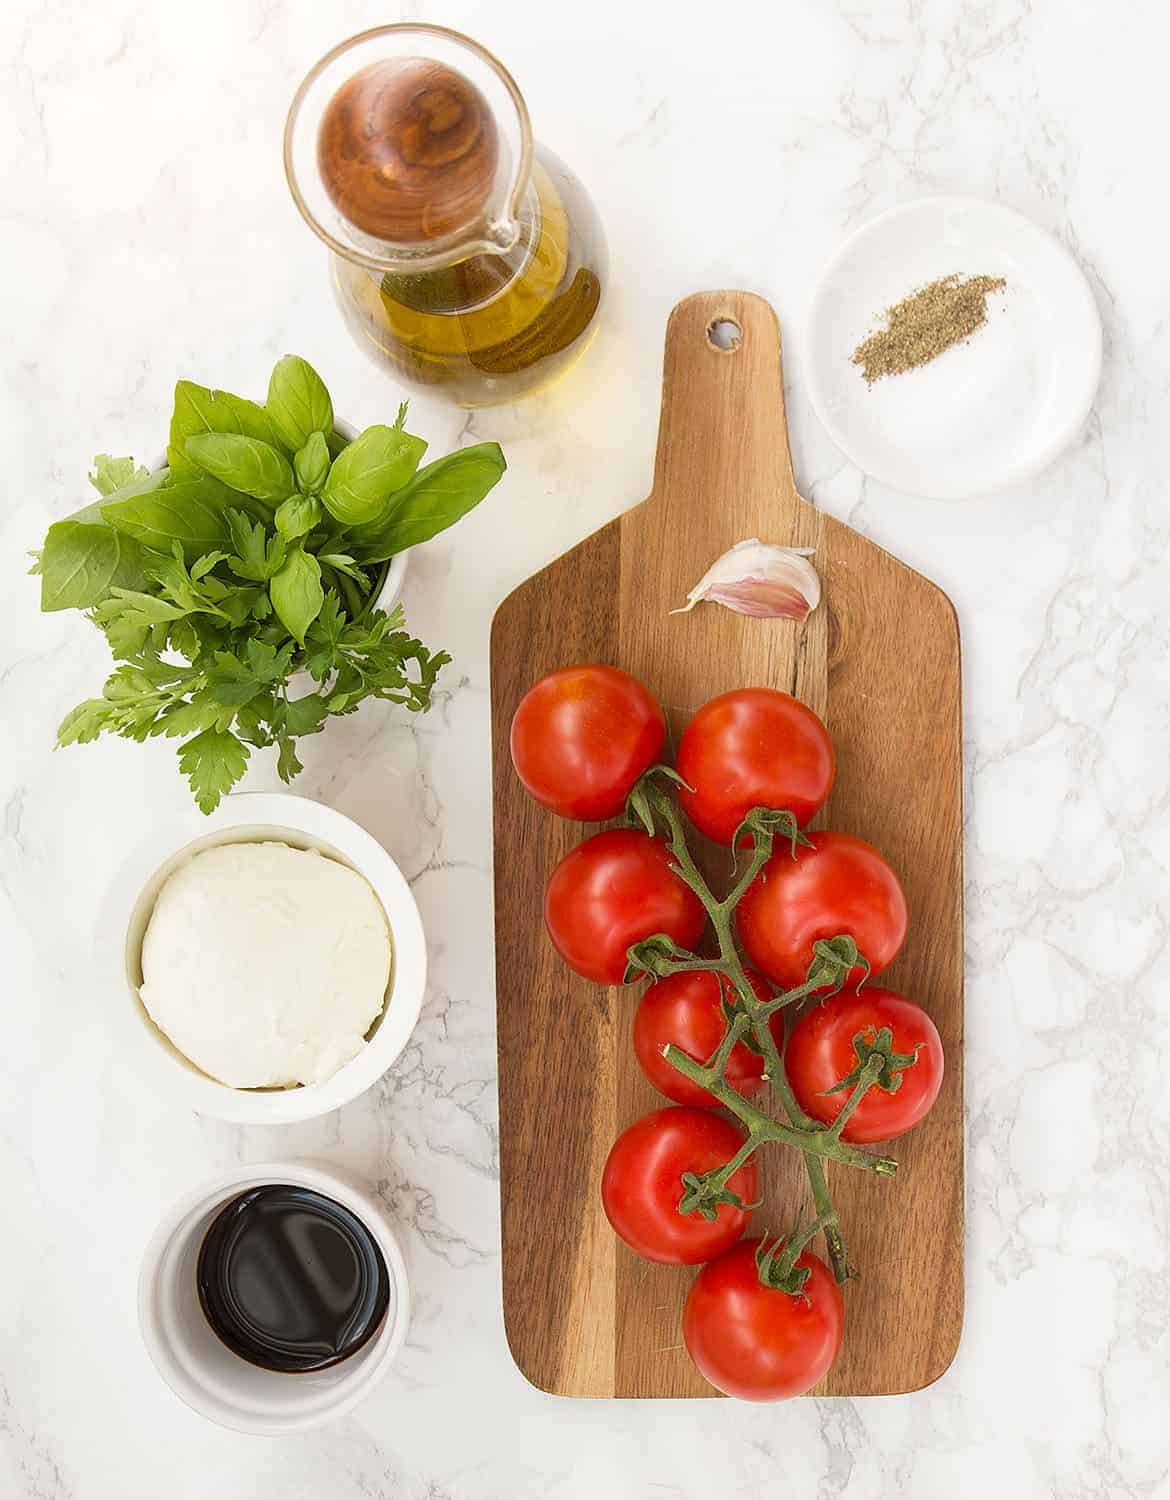 Delicious tomatoes, olive oil, balsamic vinegar and a herby and garlicky dressing for the best tomato salad ever!